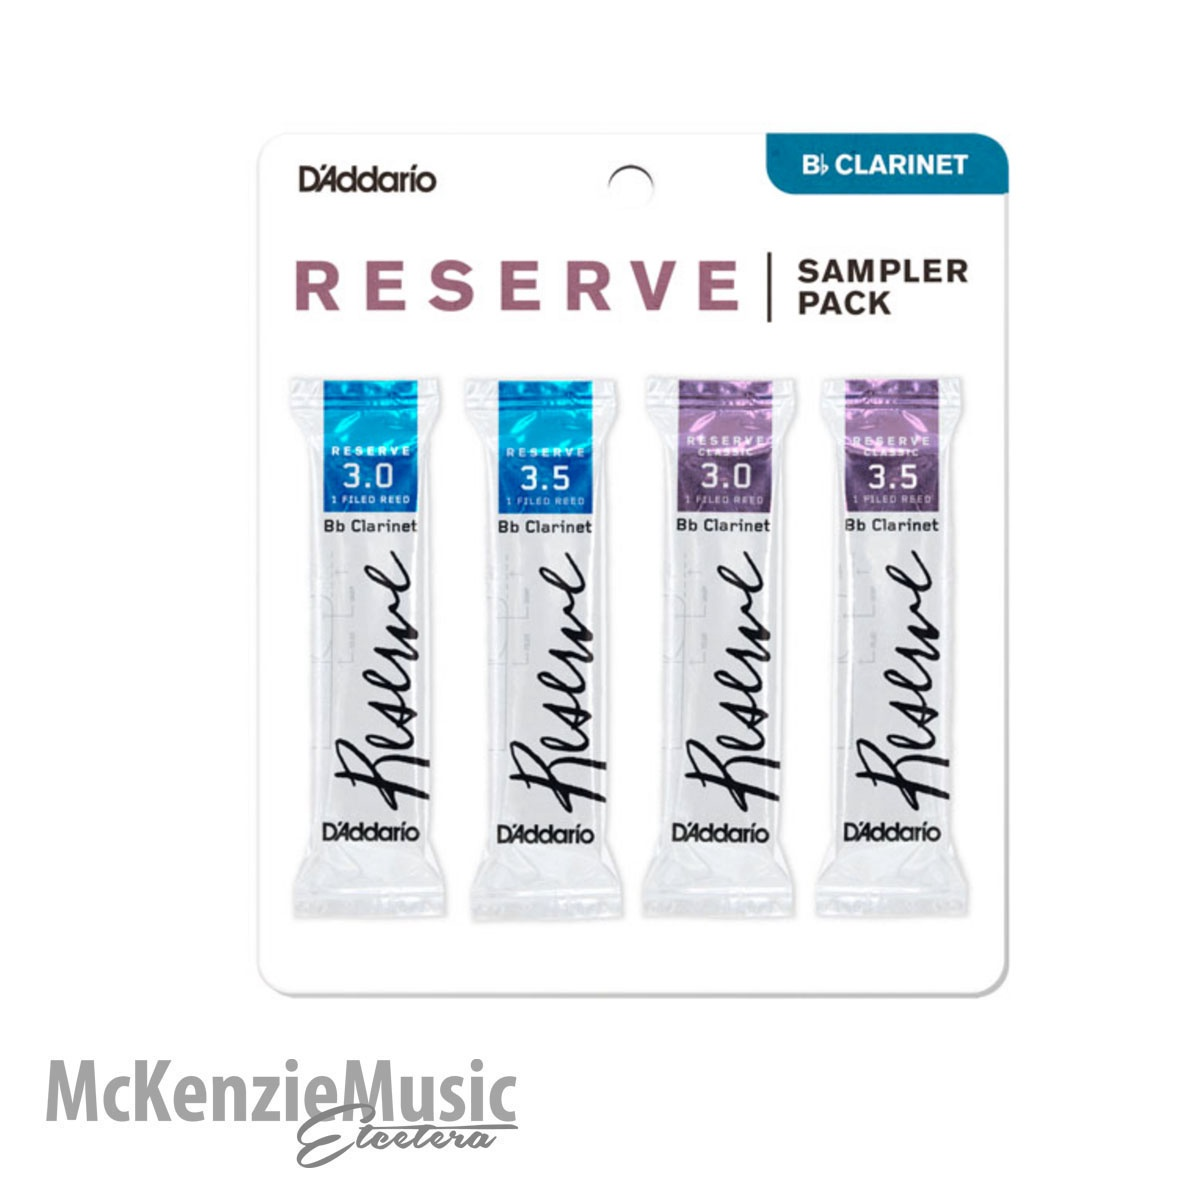 D'Addario Reserve Clarinet Sample Pack Size 3.0/3.5